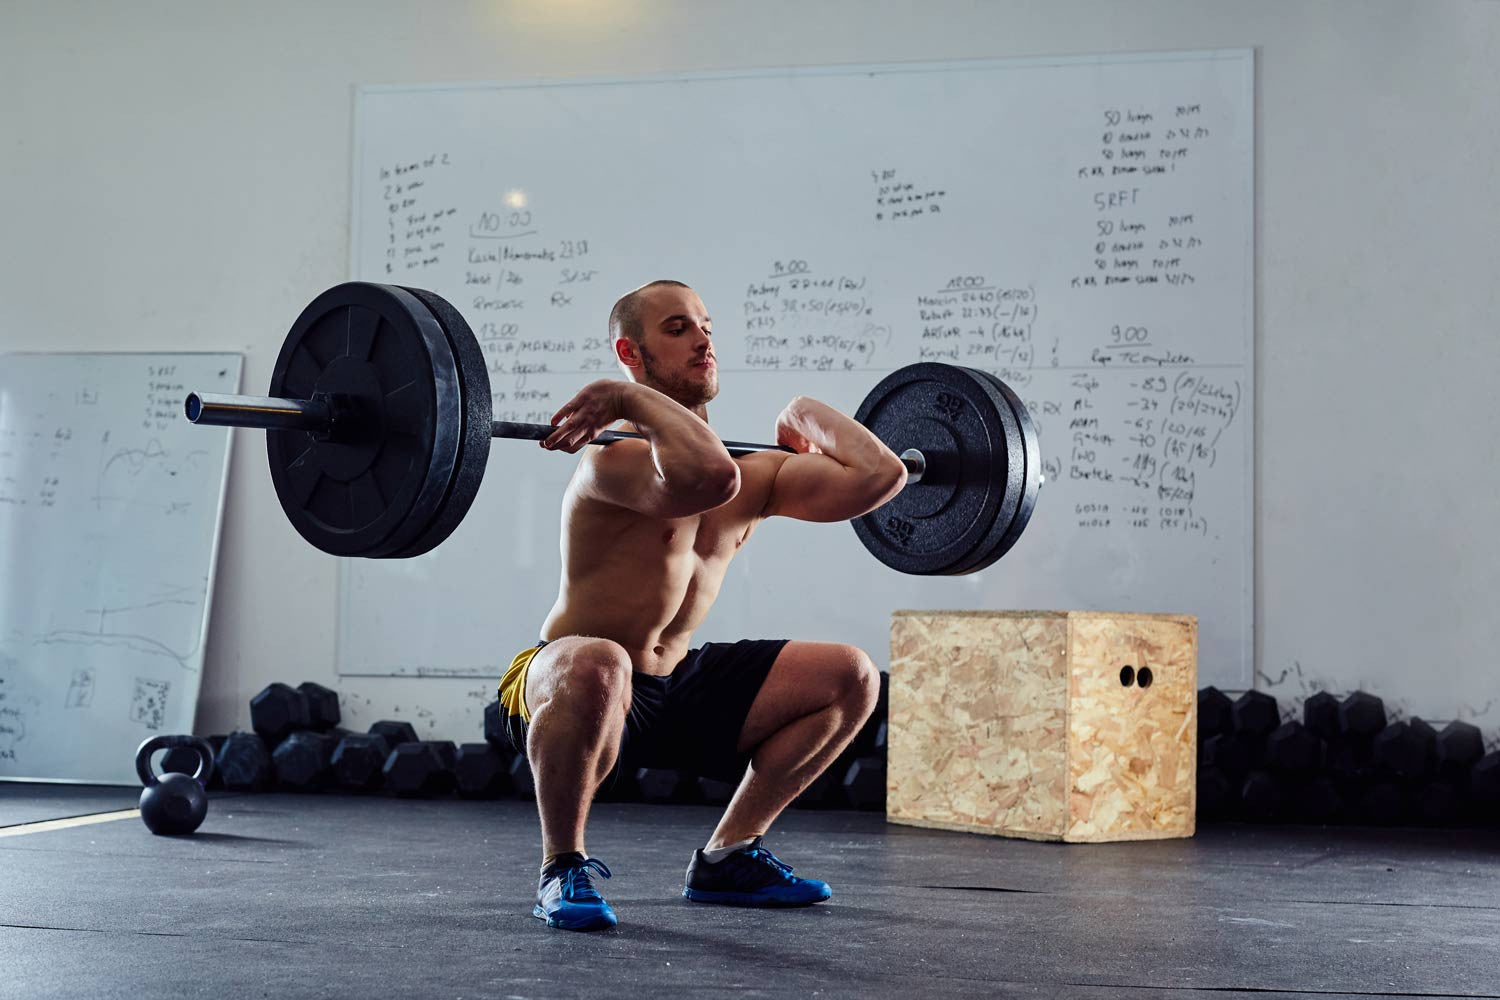 Man squatting with barbell and bumper plates